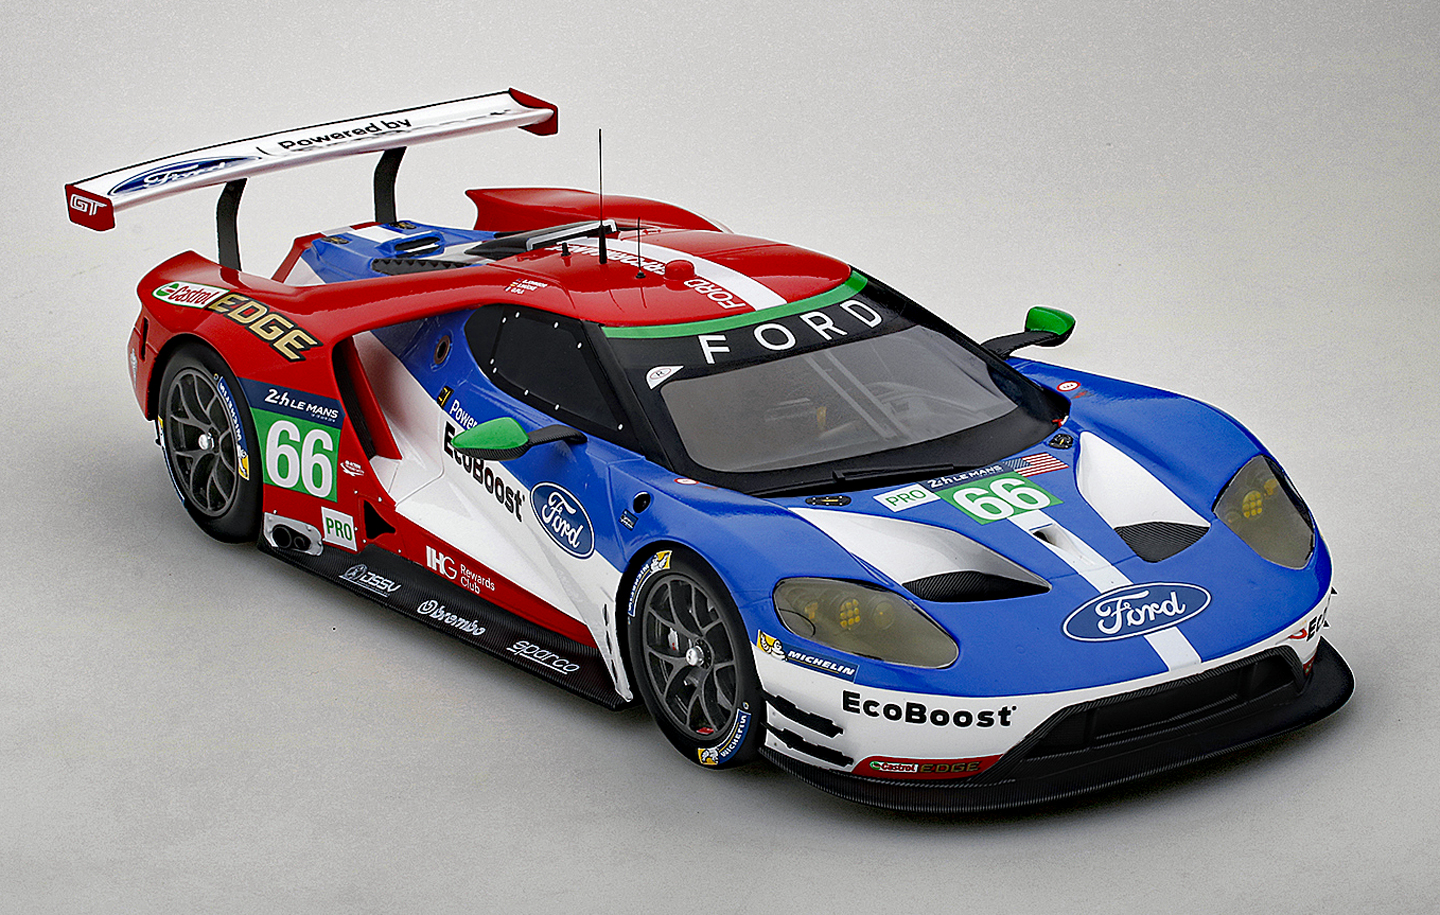 Ford gt 66 4th lmgte pro le mans 2016